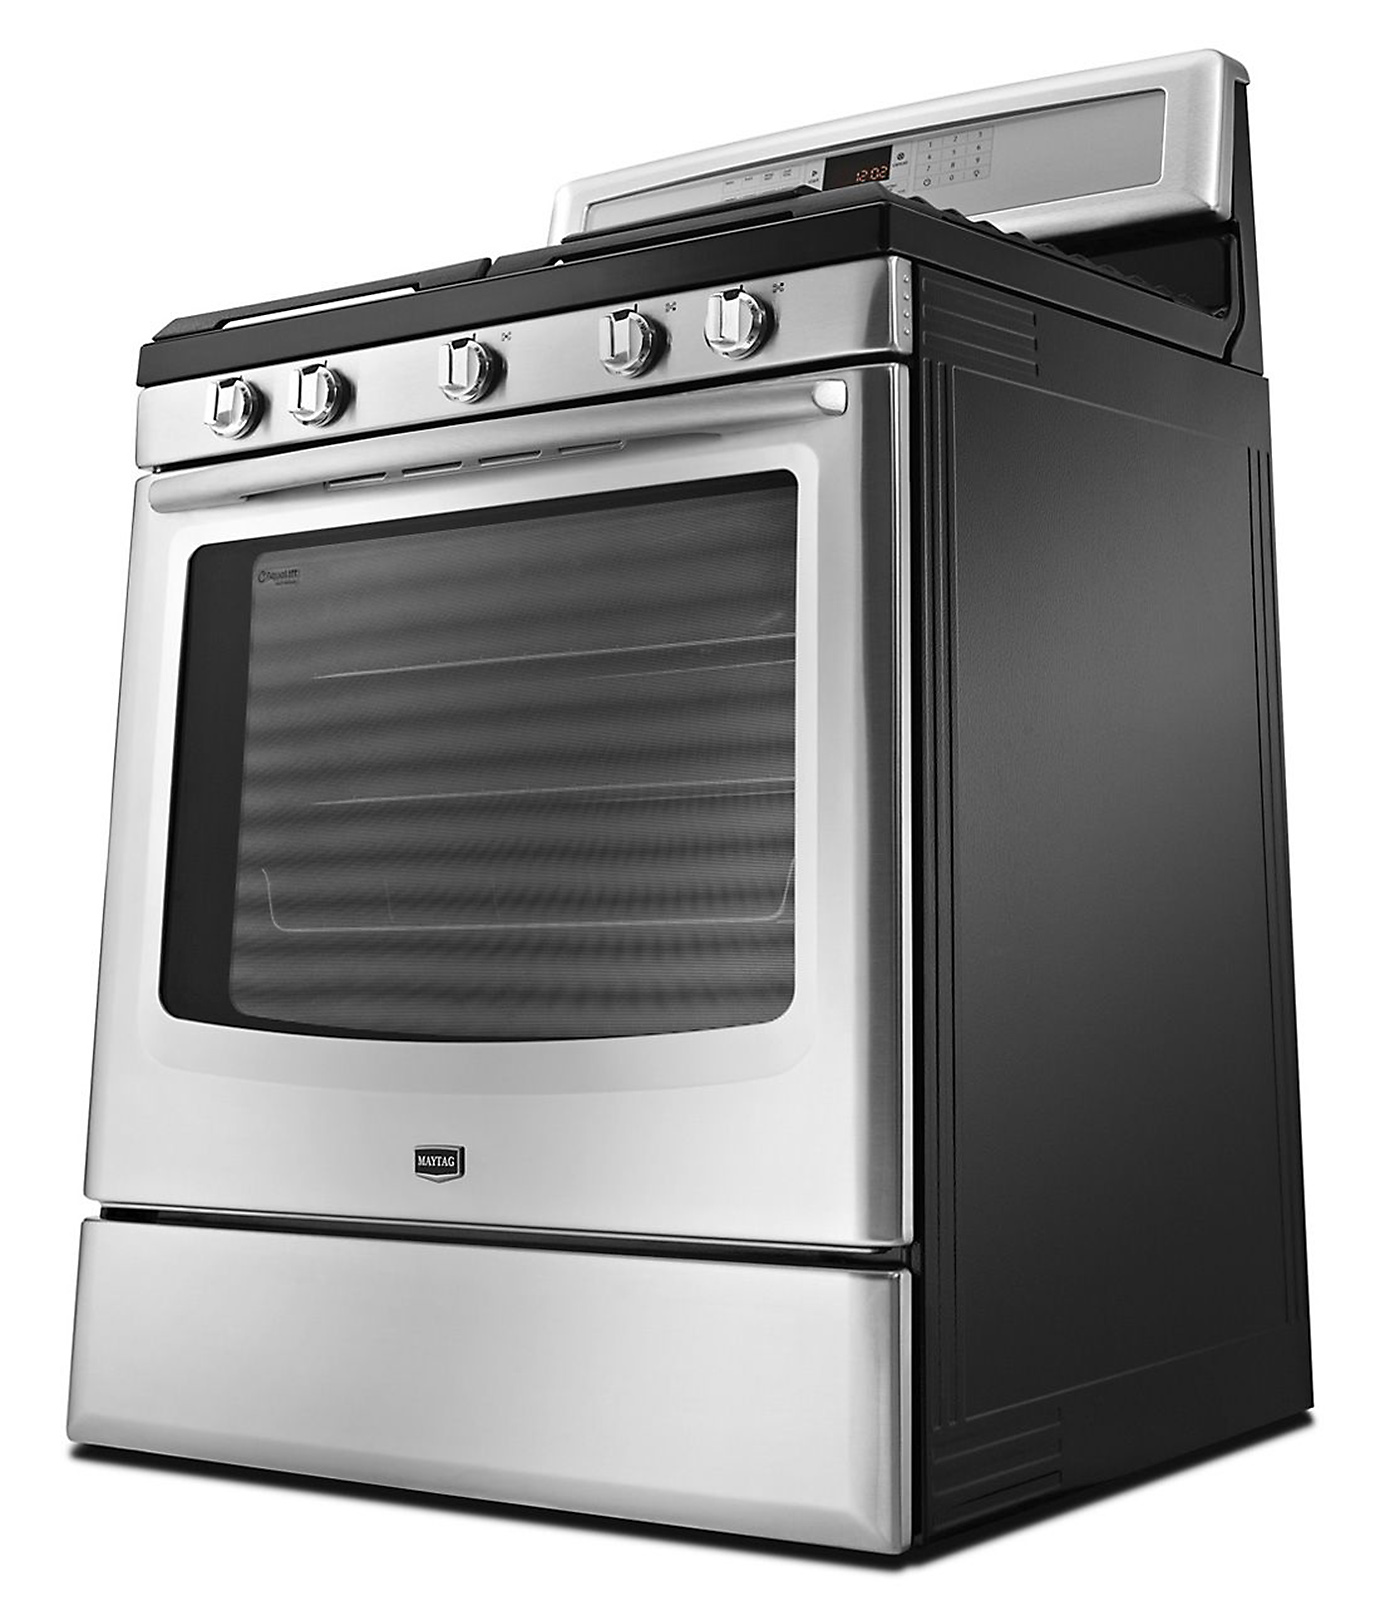 Maytag 5.8 cu. ft. Gas Range w/ Speed Heat™ Burner - Stainless Steel